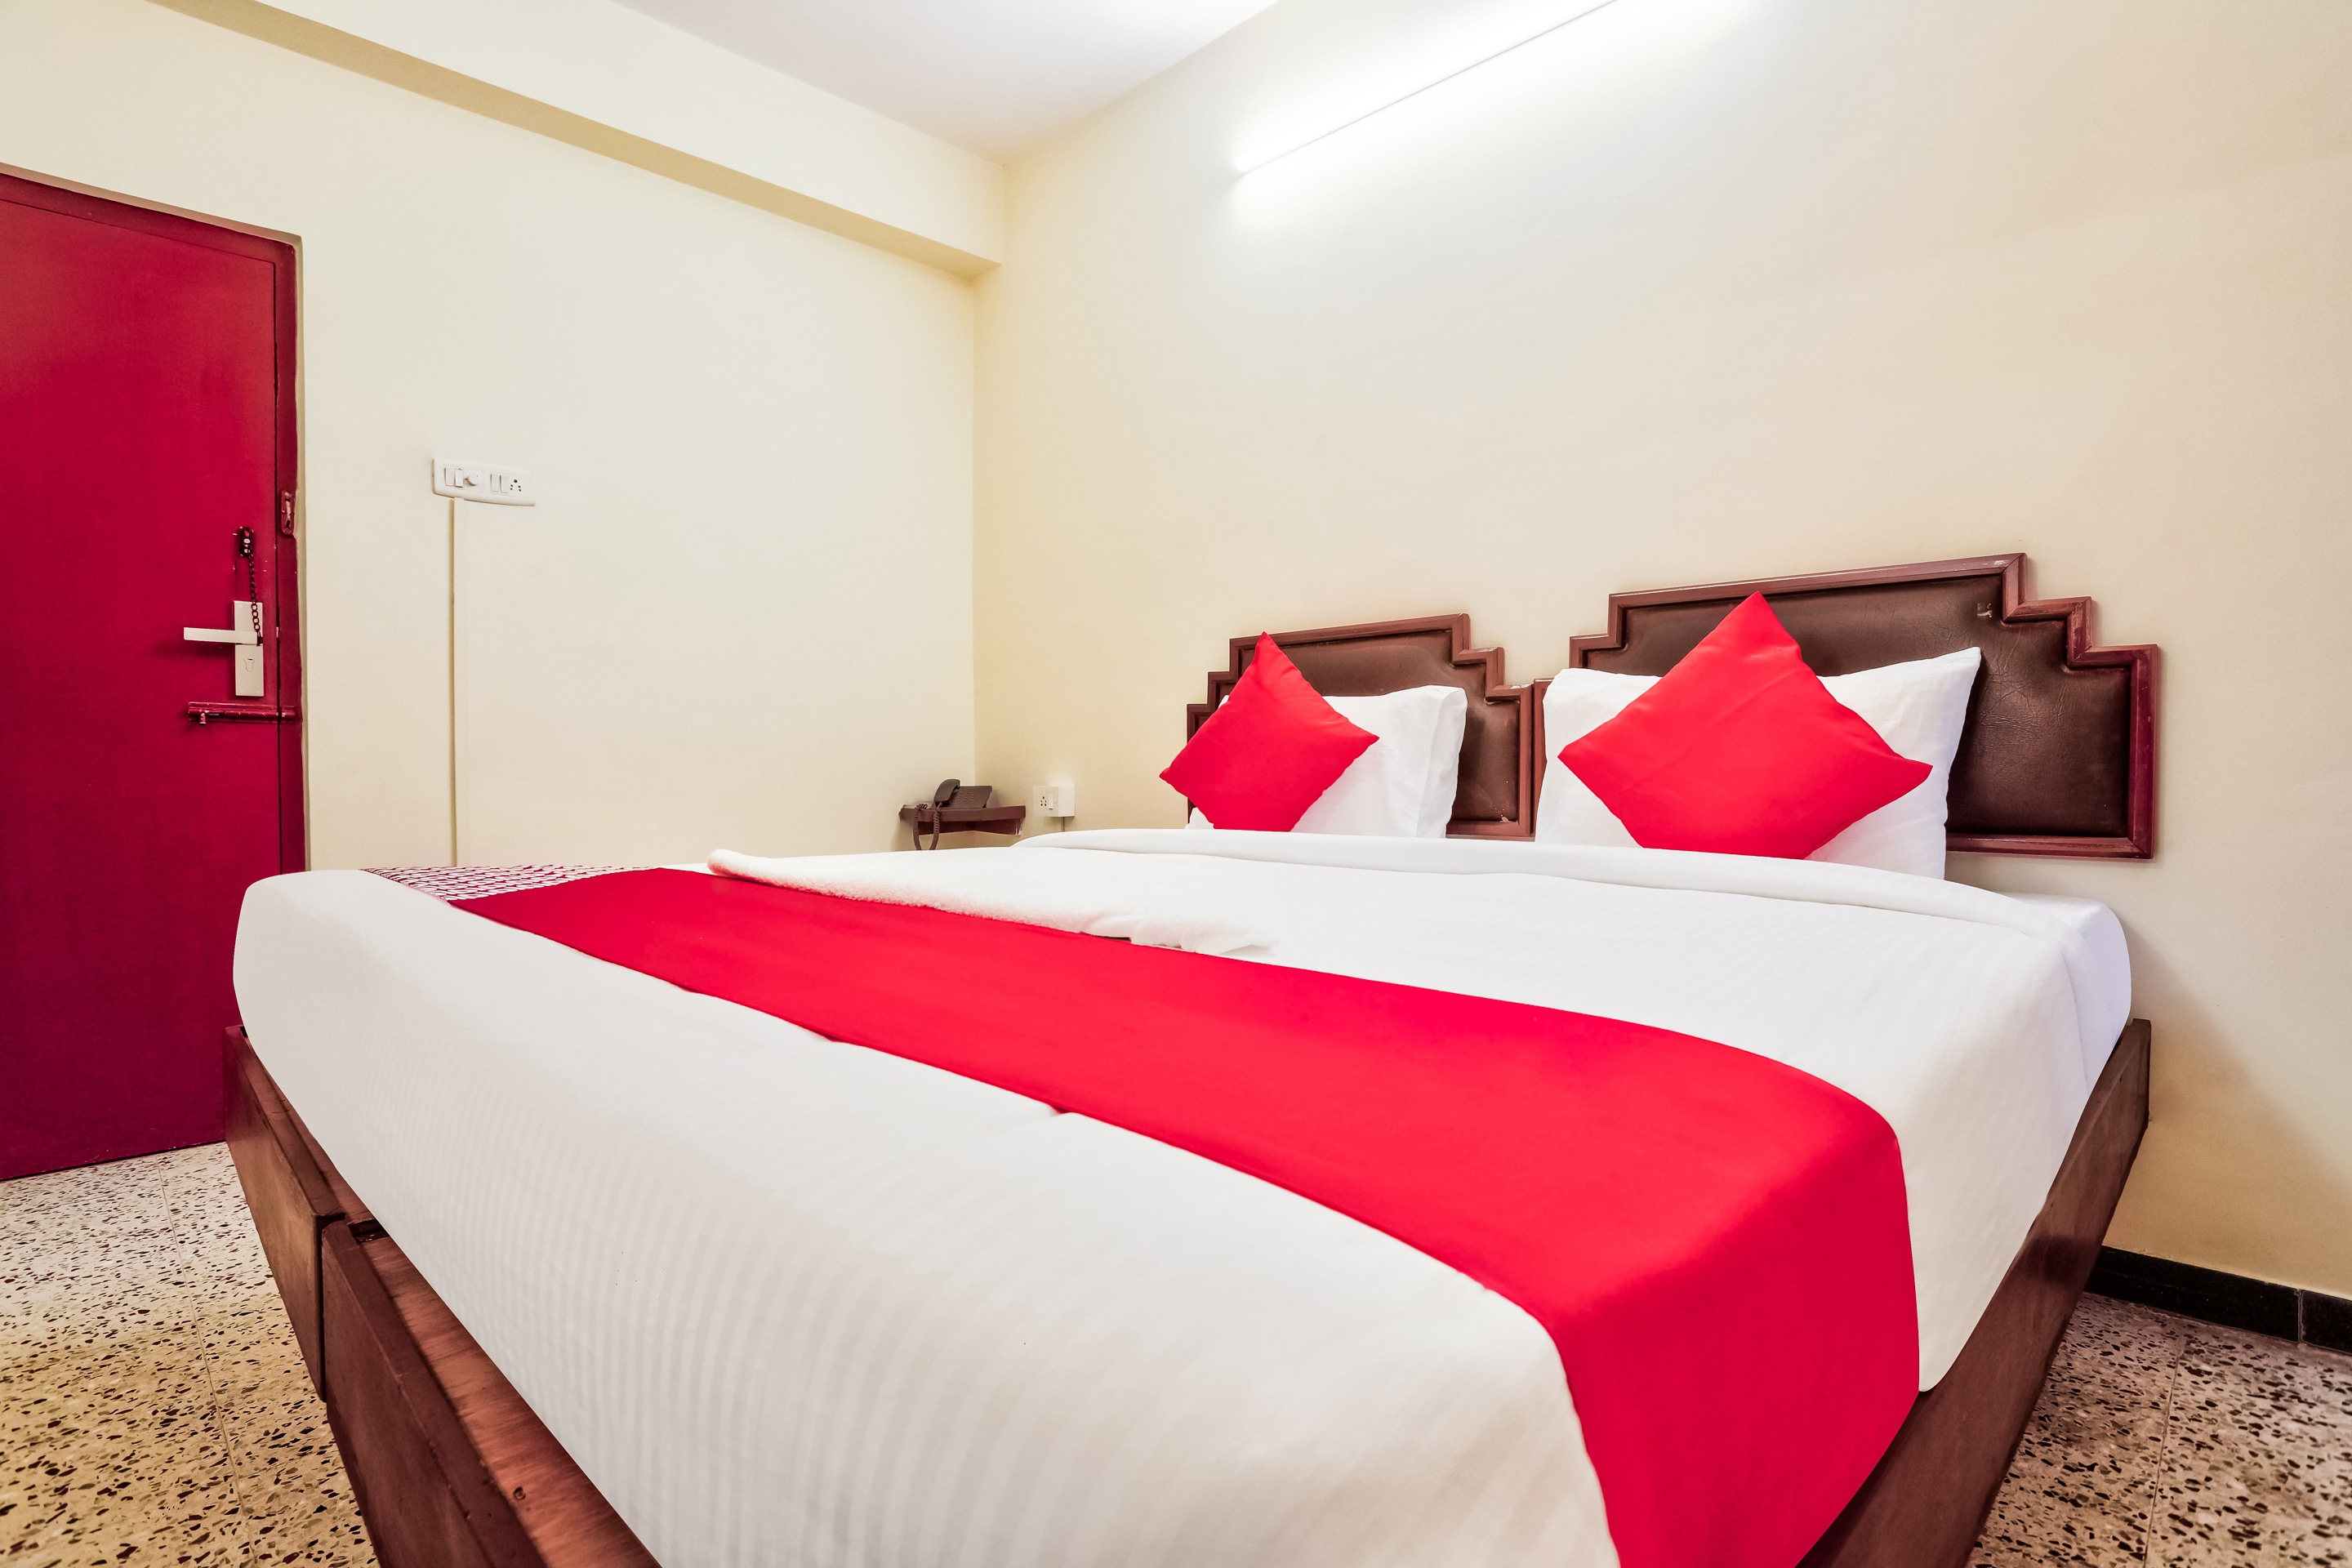 Flagship Hotels in Chennai Starting @ ₹600 - Upto 49% OFF on 38